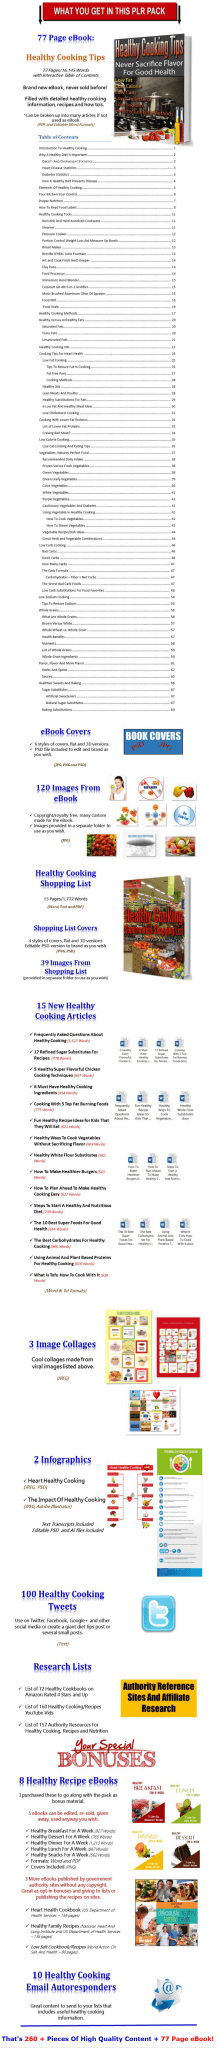 Healthy Cooking eBook, Articles, Videos, Slideshows PLR Pack